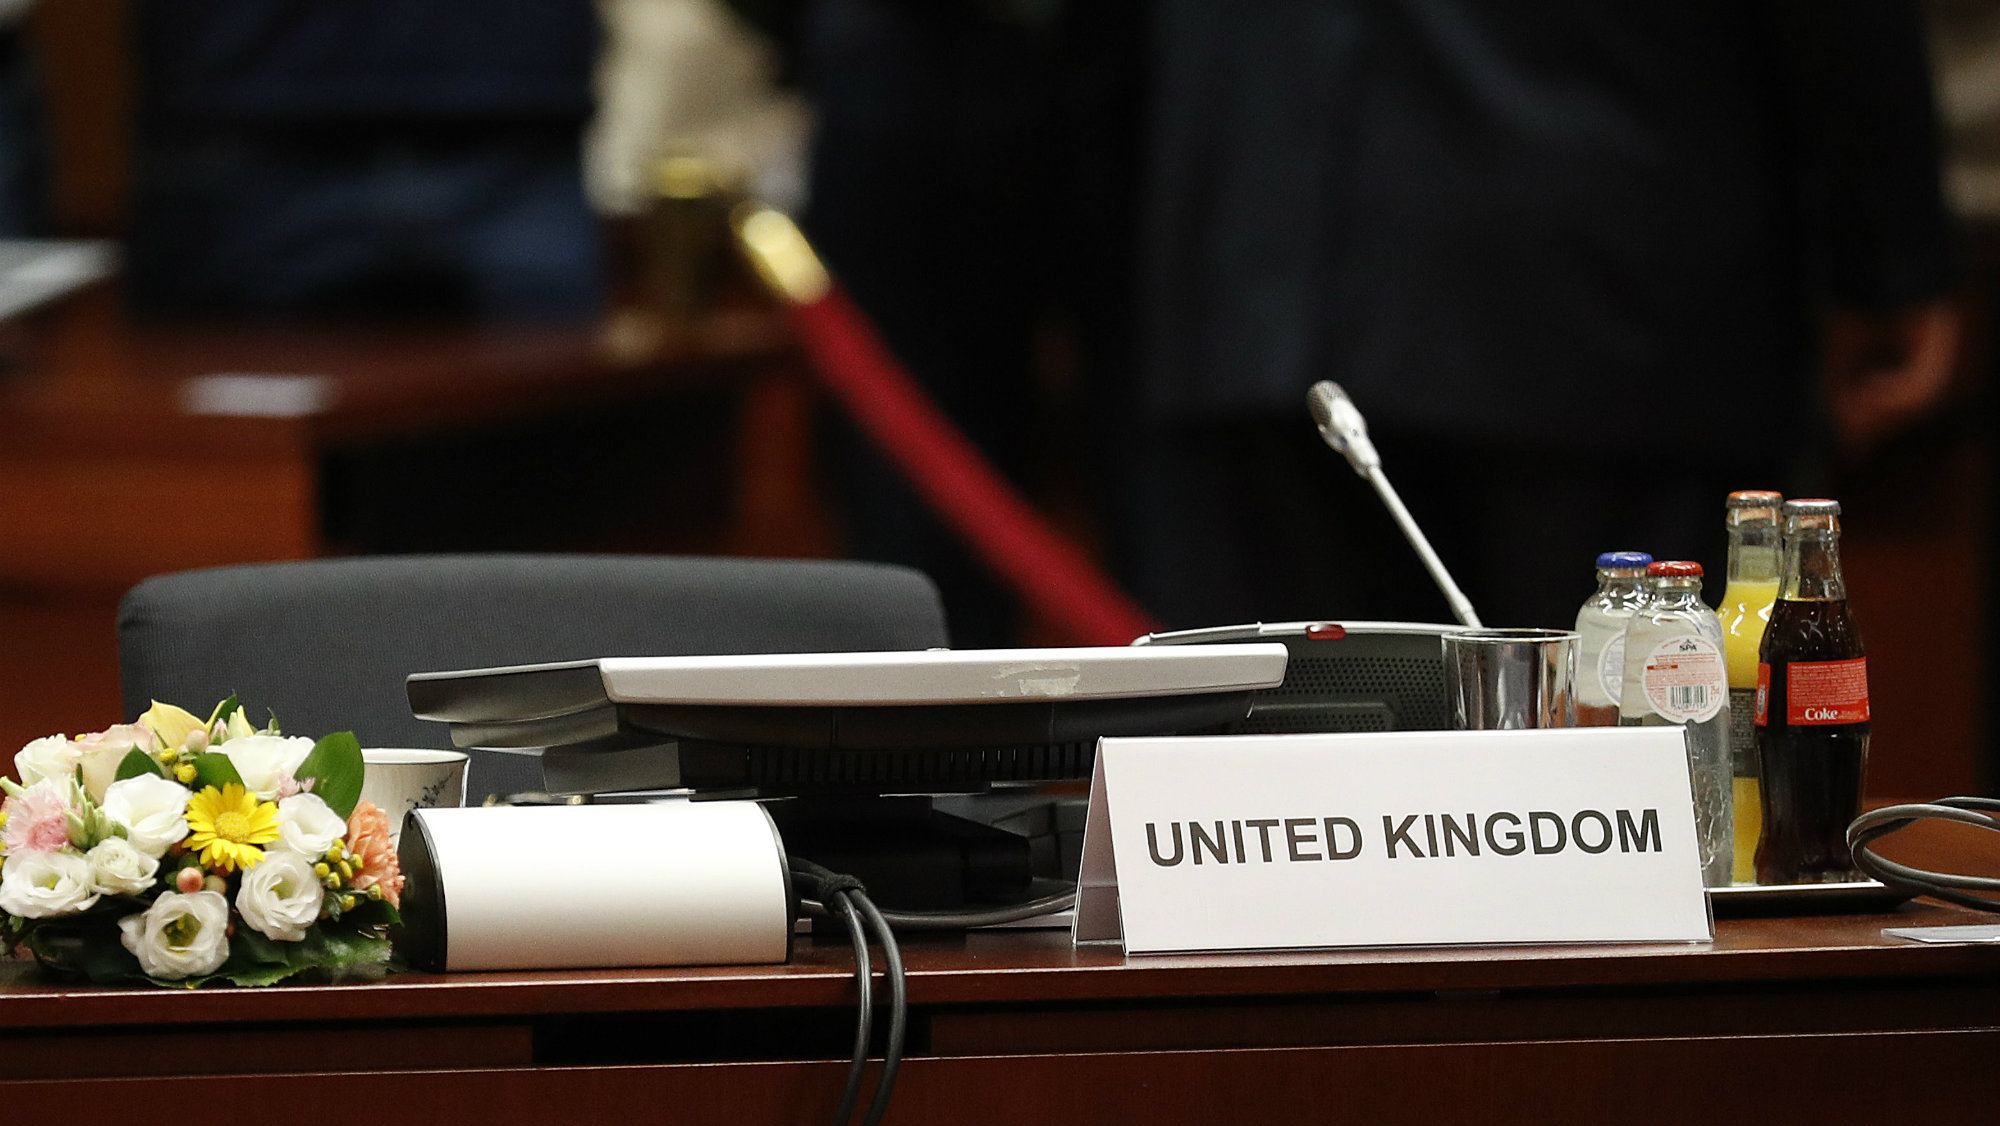 The UK seat at the conference table the EU Summit in Brussels, Belgium, June 28, 2016.